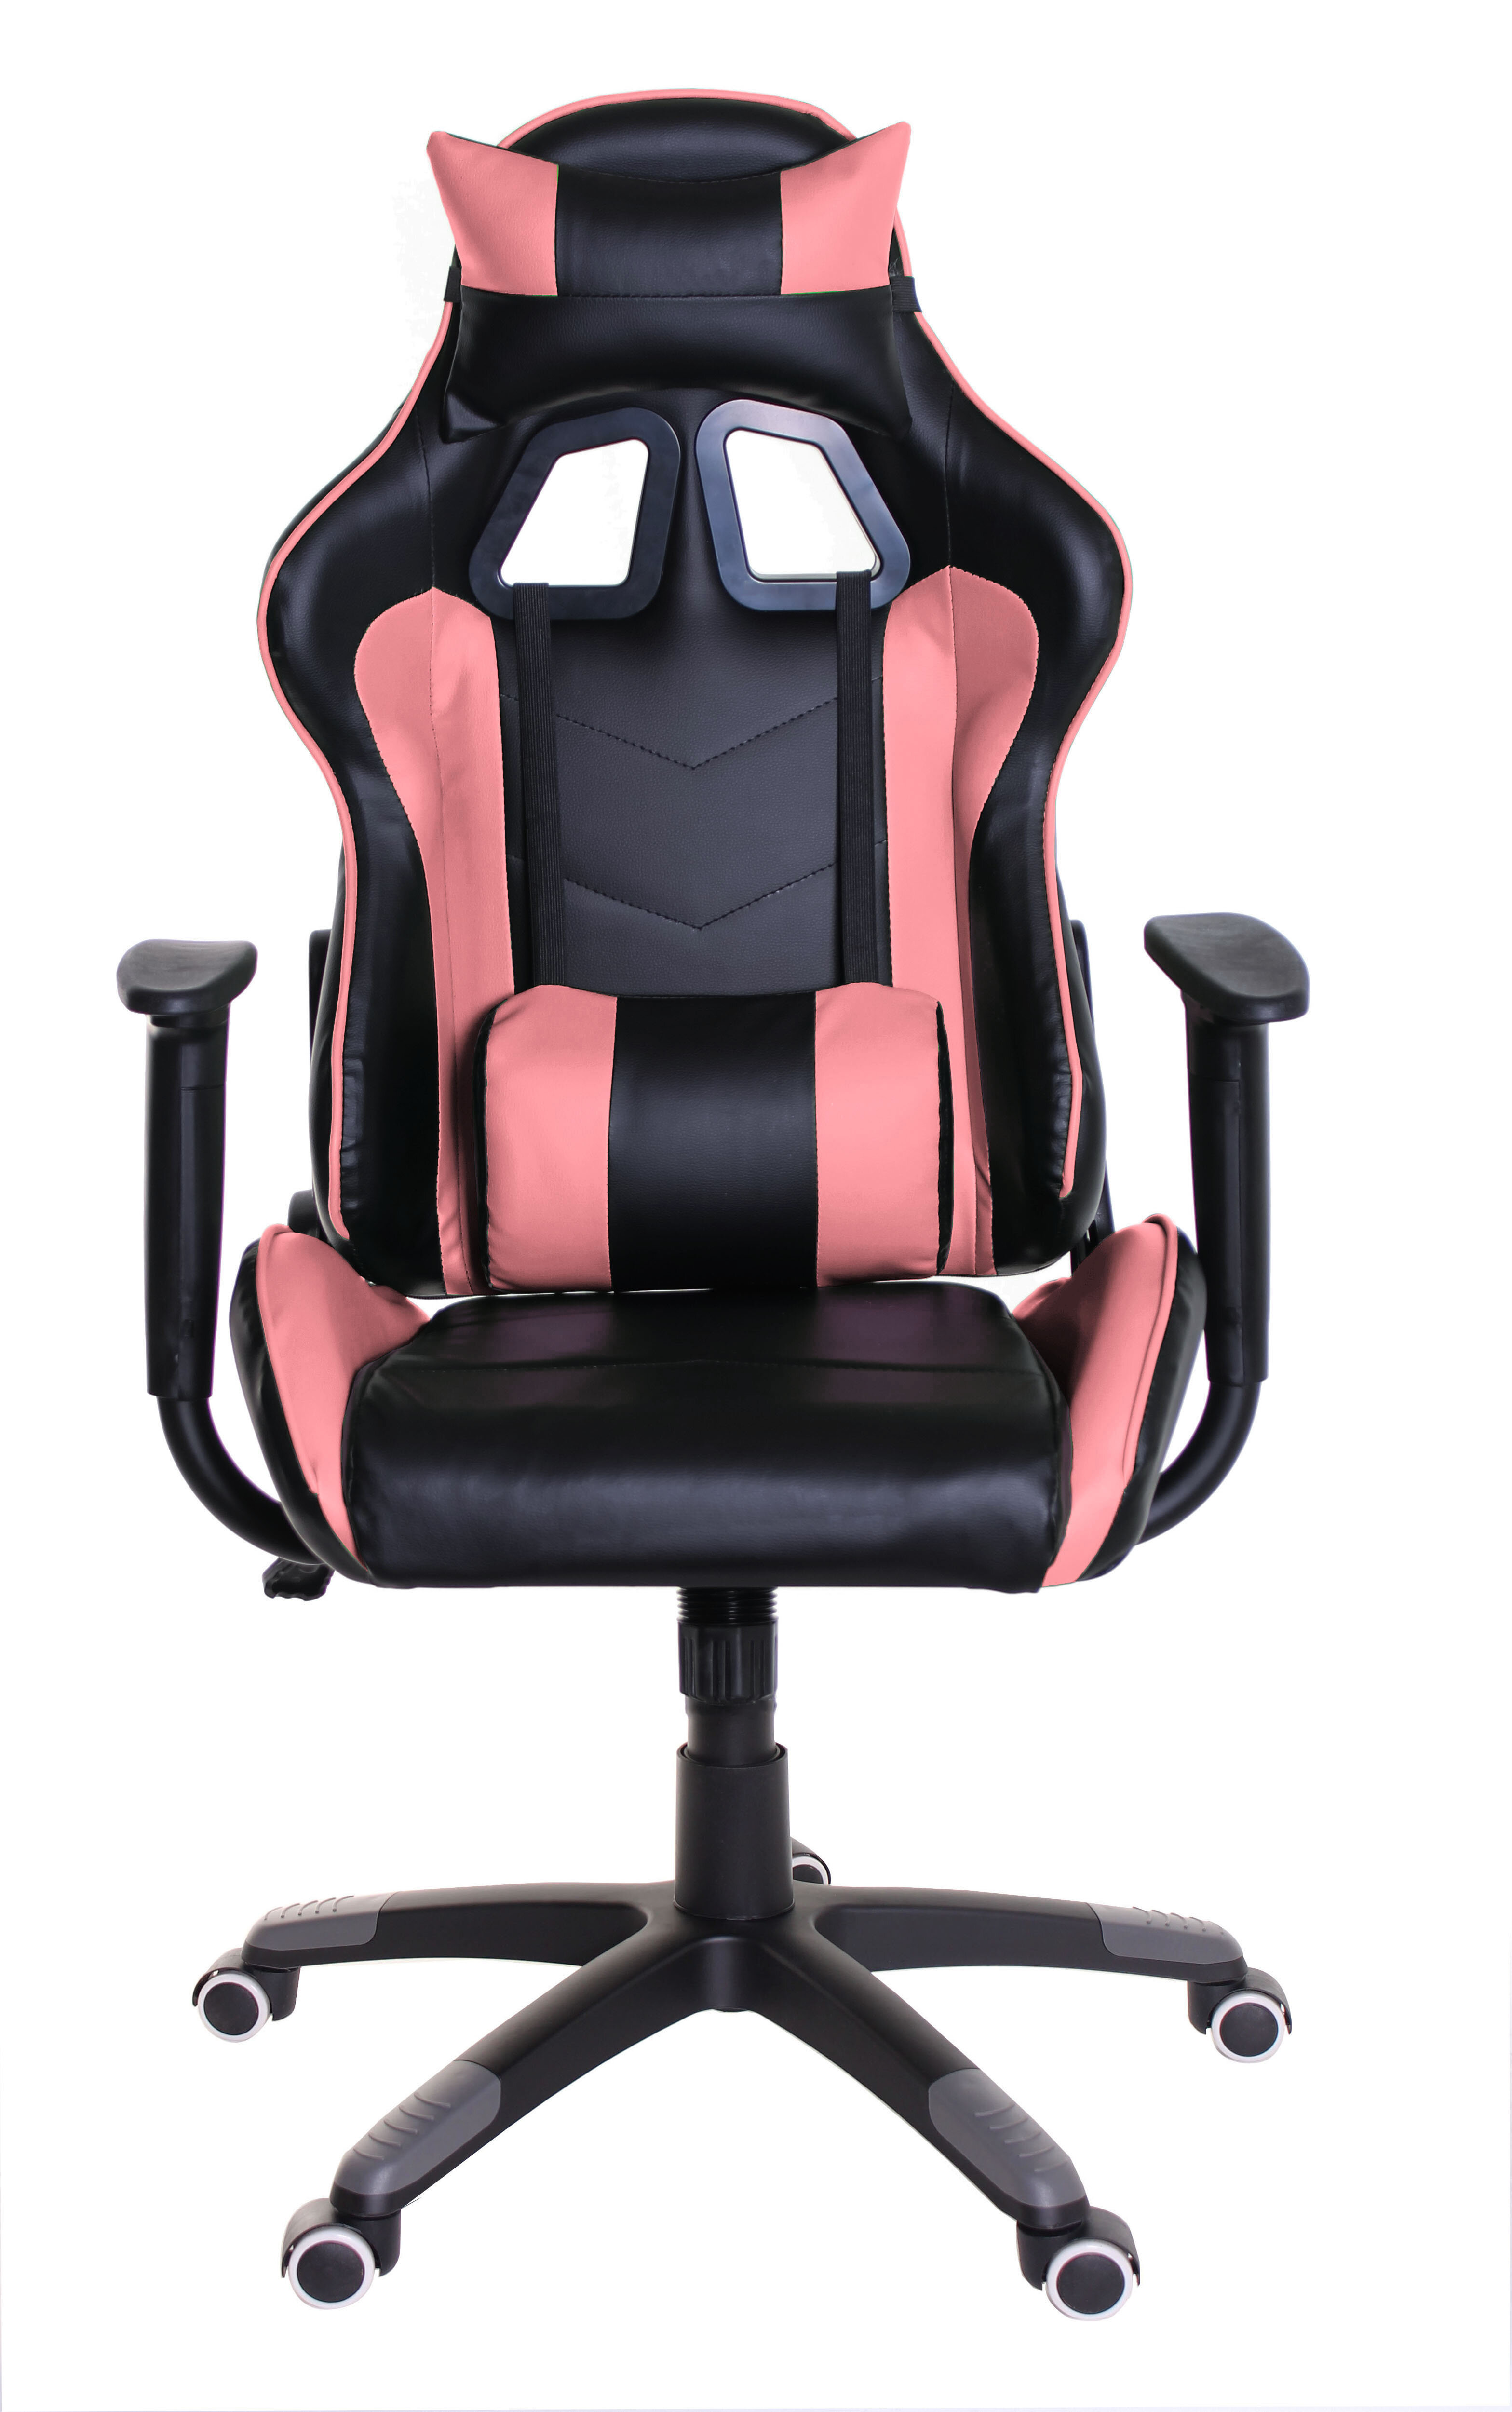 High Back Racing Style Executive Office Chair With Lumbar Support and Headrest eurosports PU Leather Multi-function Computer Gaming Chair Blue